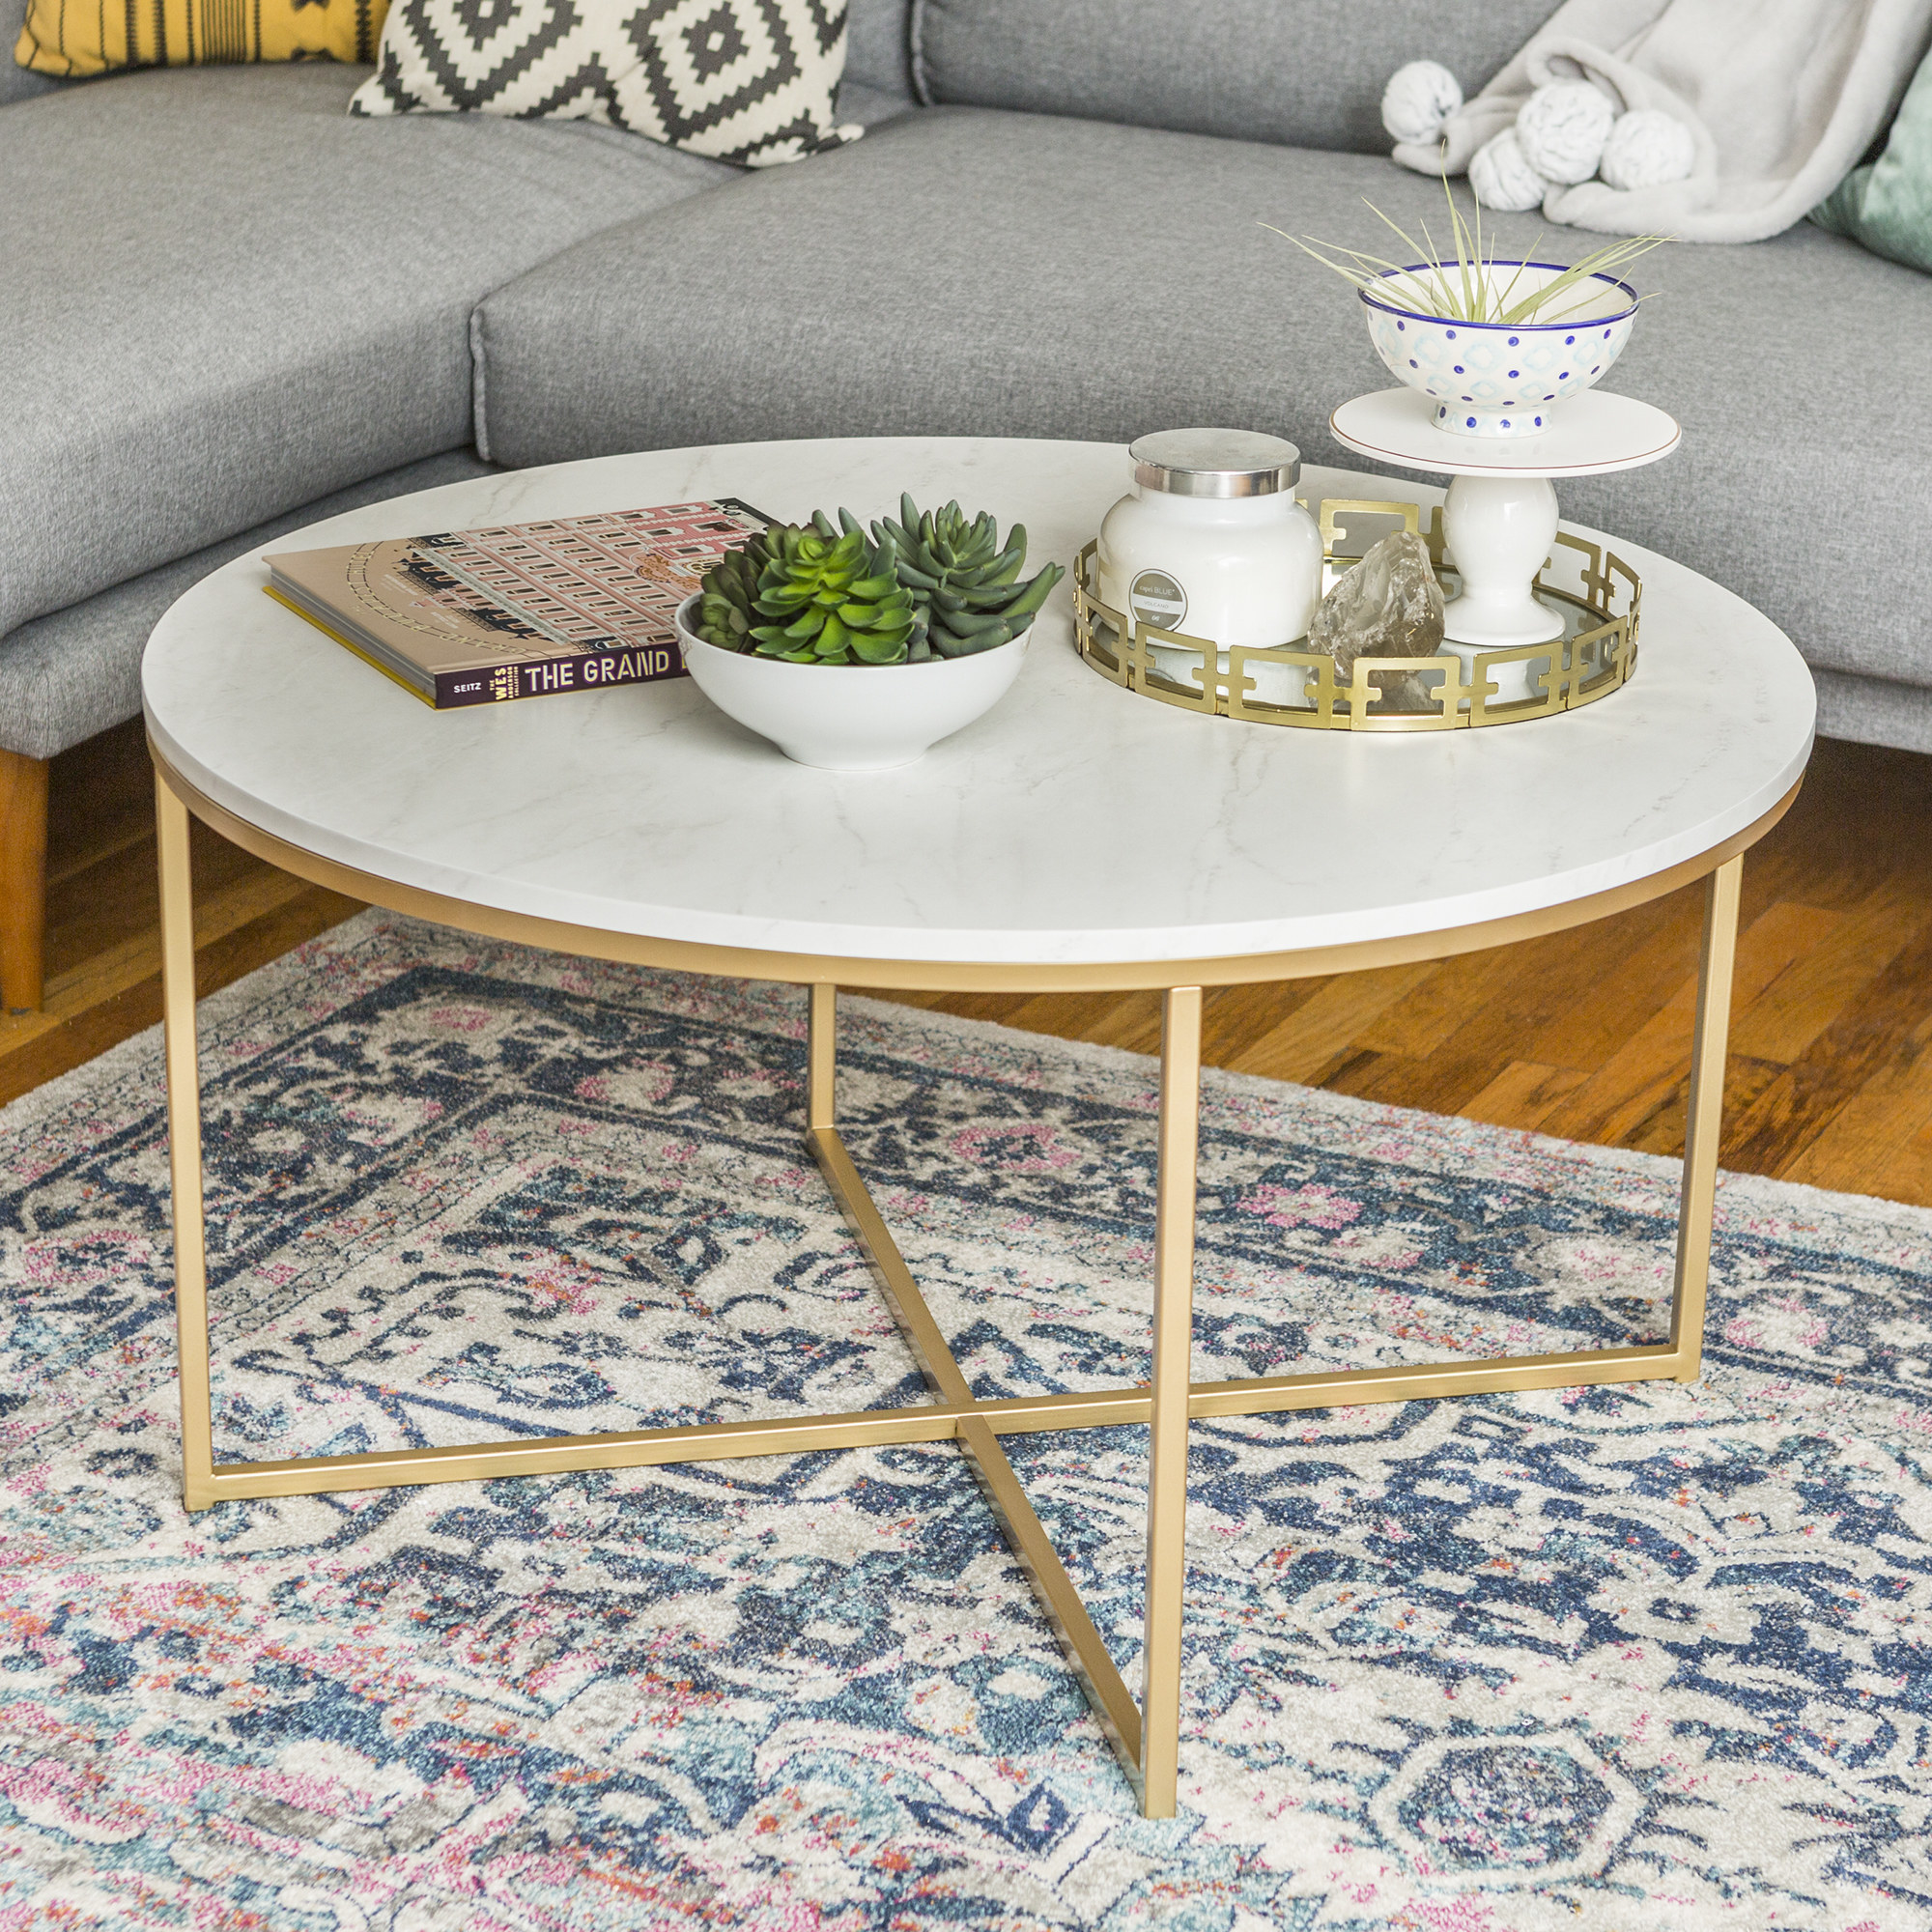 The round coffee table